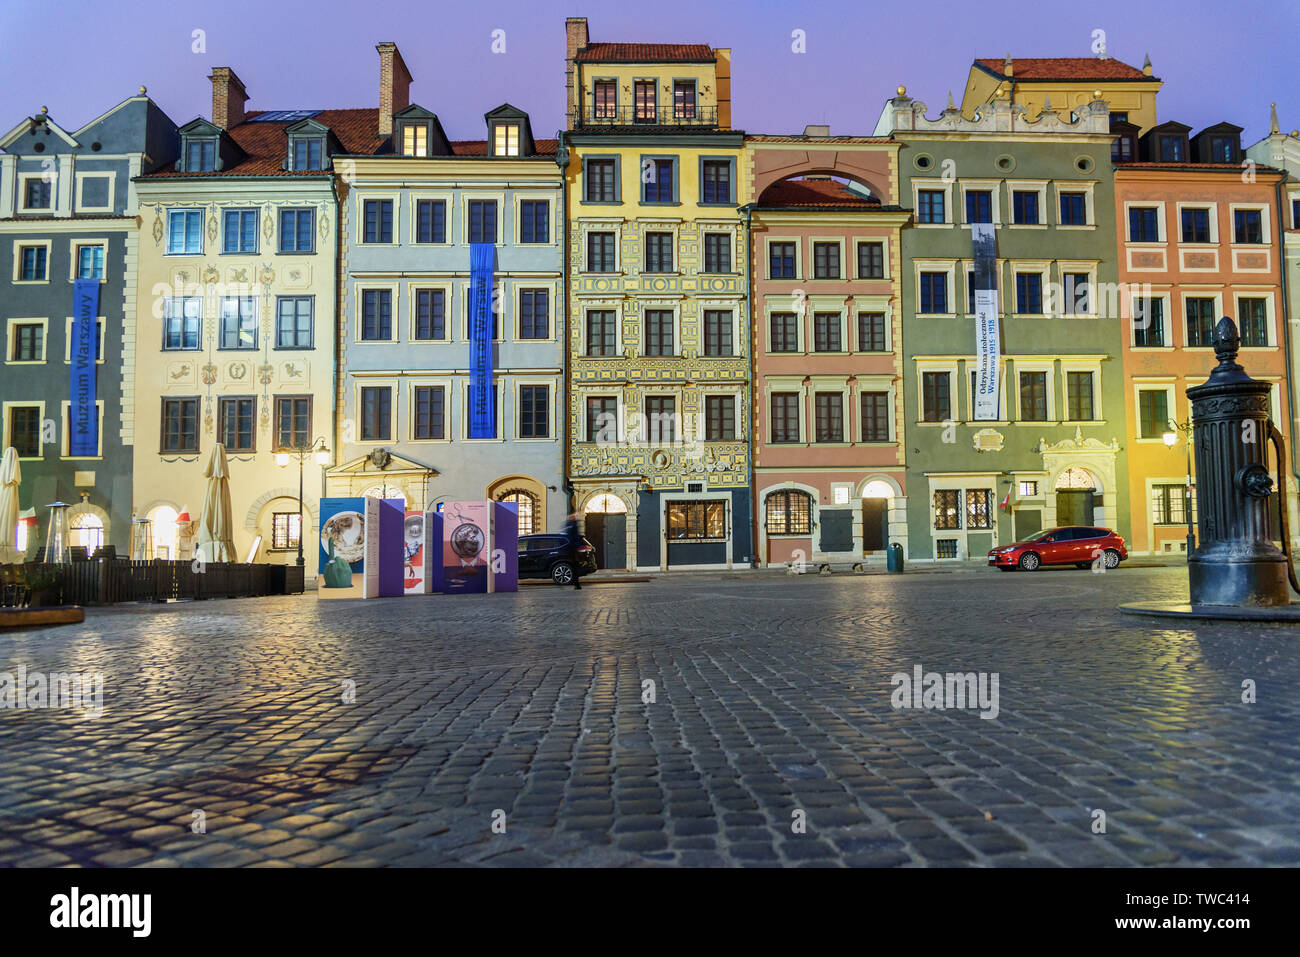 Warsaw, Poland - November 11, 2018: Traditional old houses on Old Town Market Place at night - Stock Image